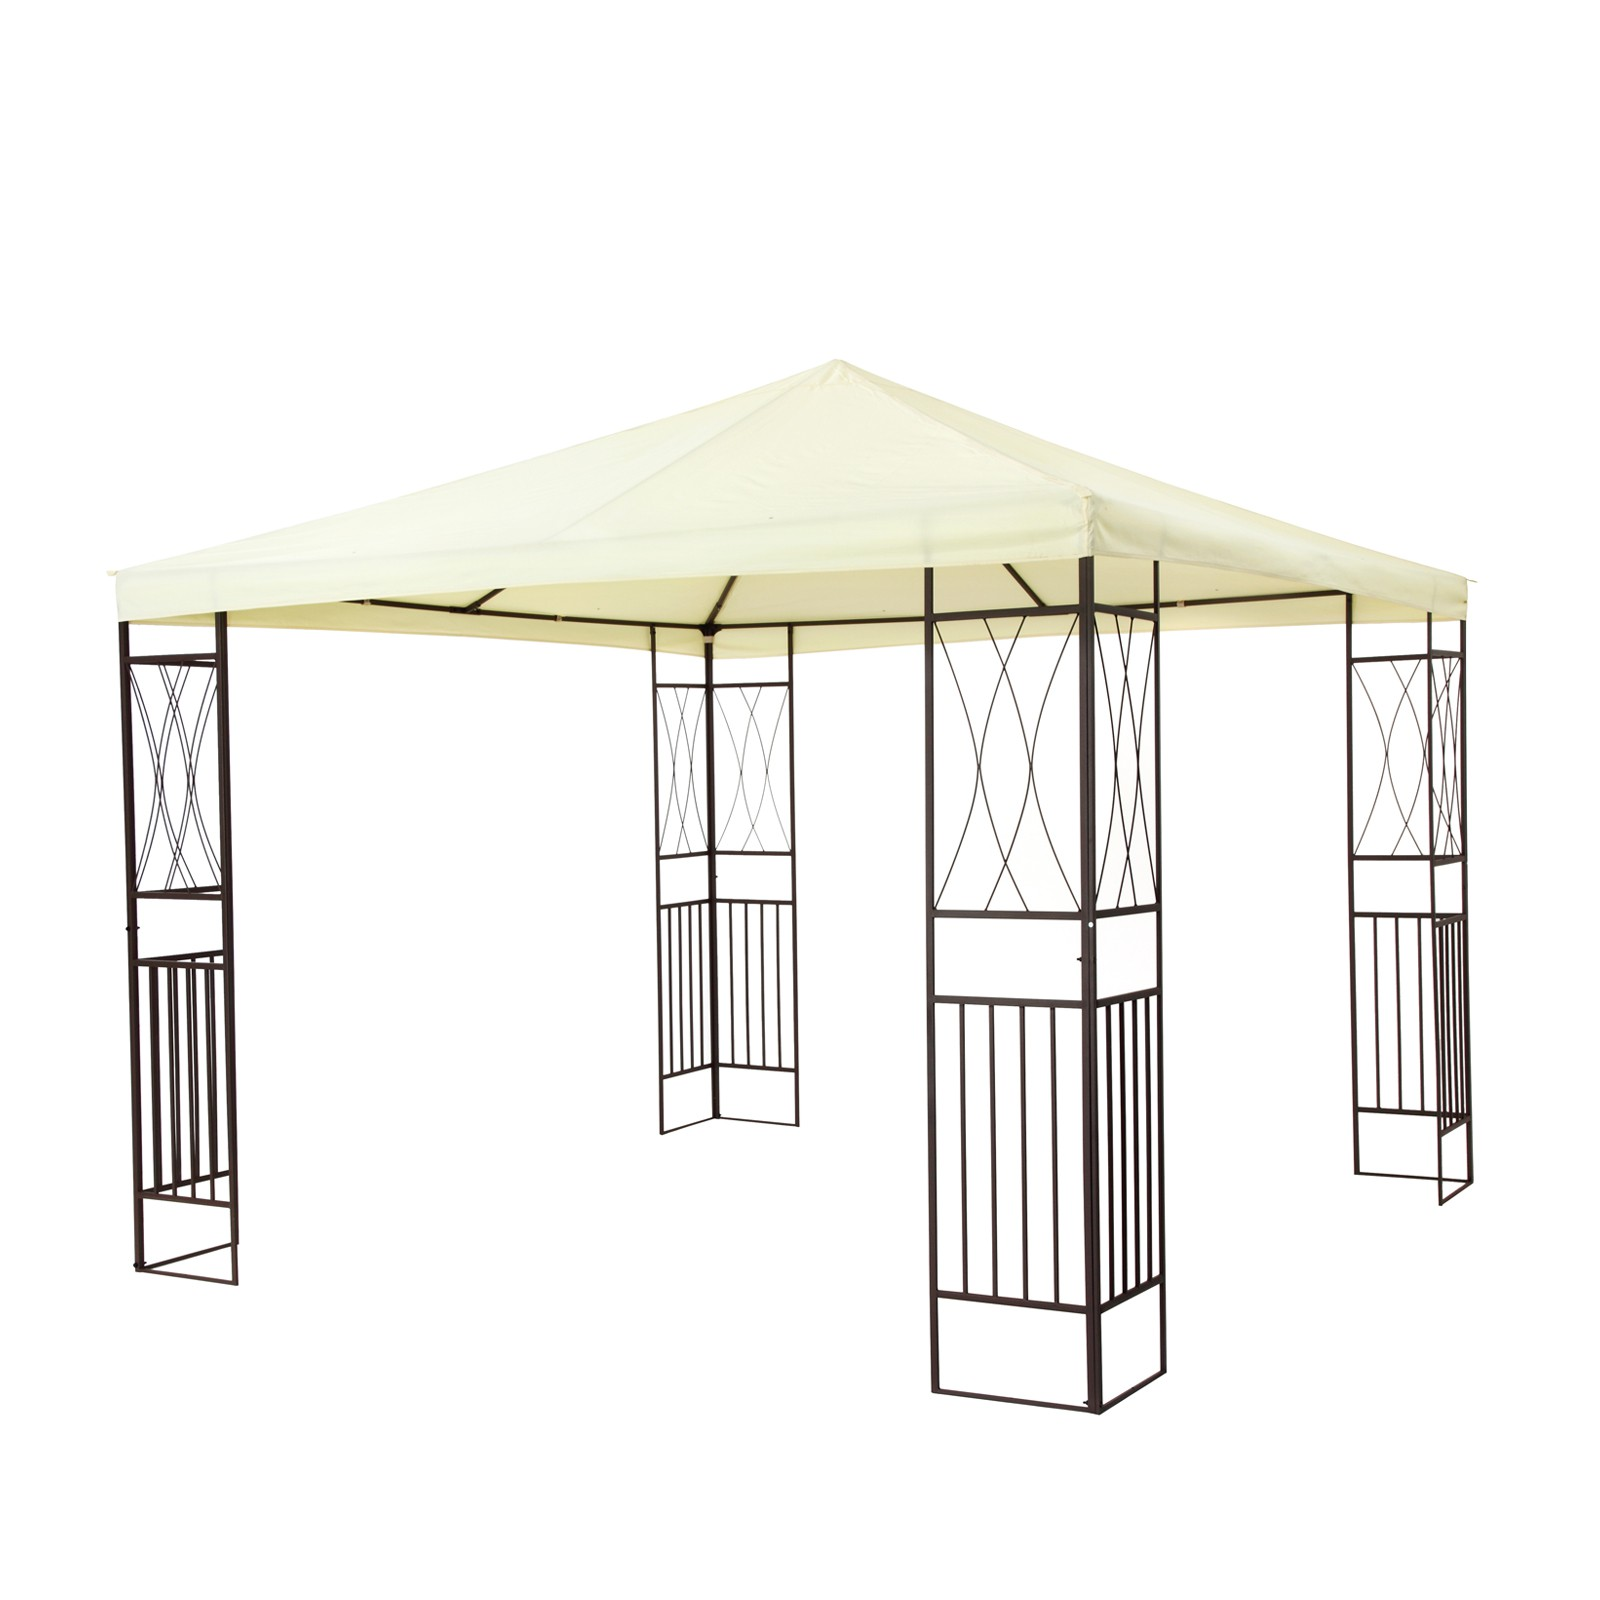 tepro garten pavillon gartenpavillon 3x3 m gartenzelt partyzelt kaemi creme ebay. Black Bedroom Furniture Sets. Home Design Ideas